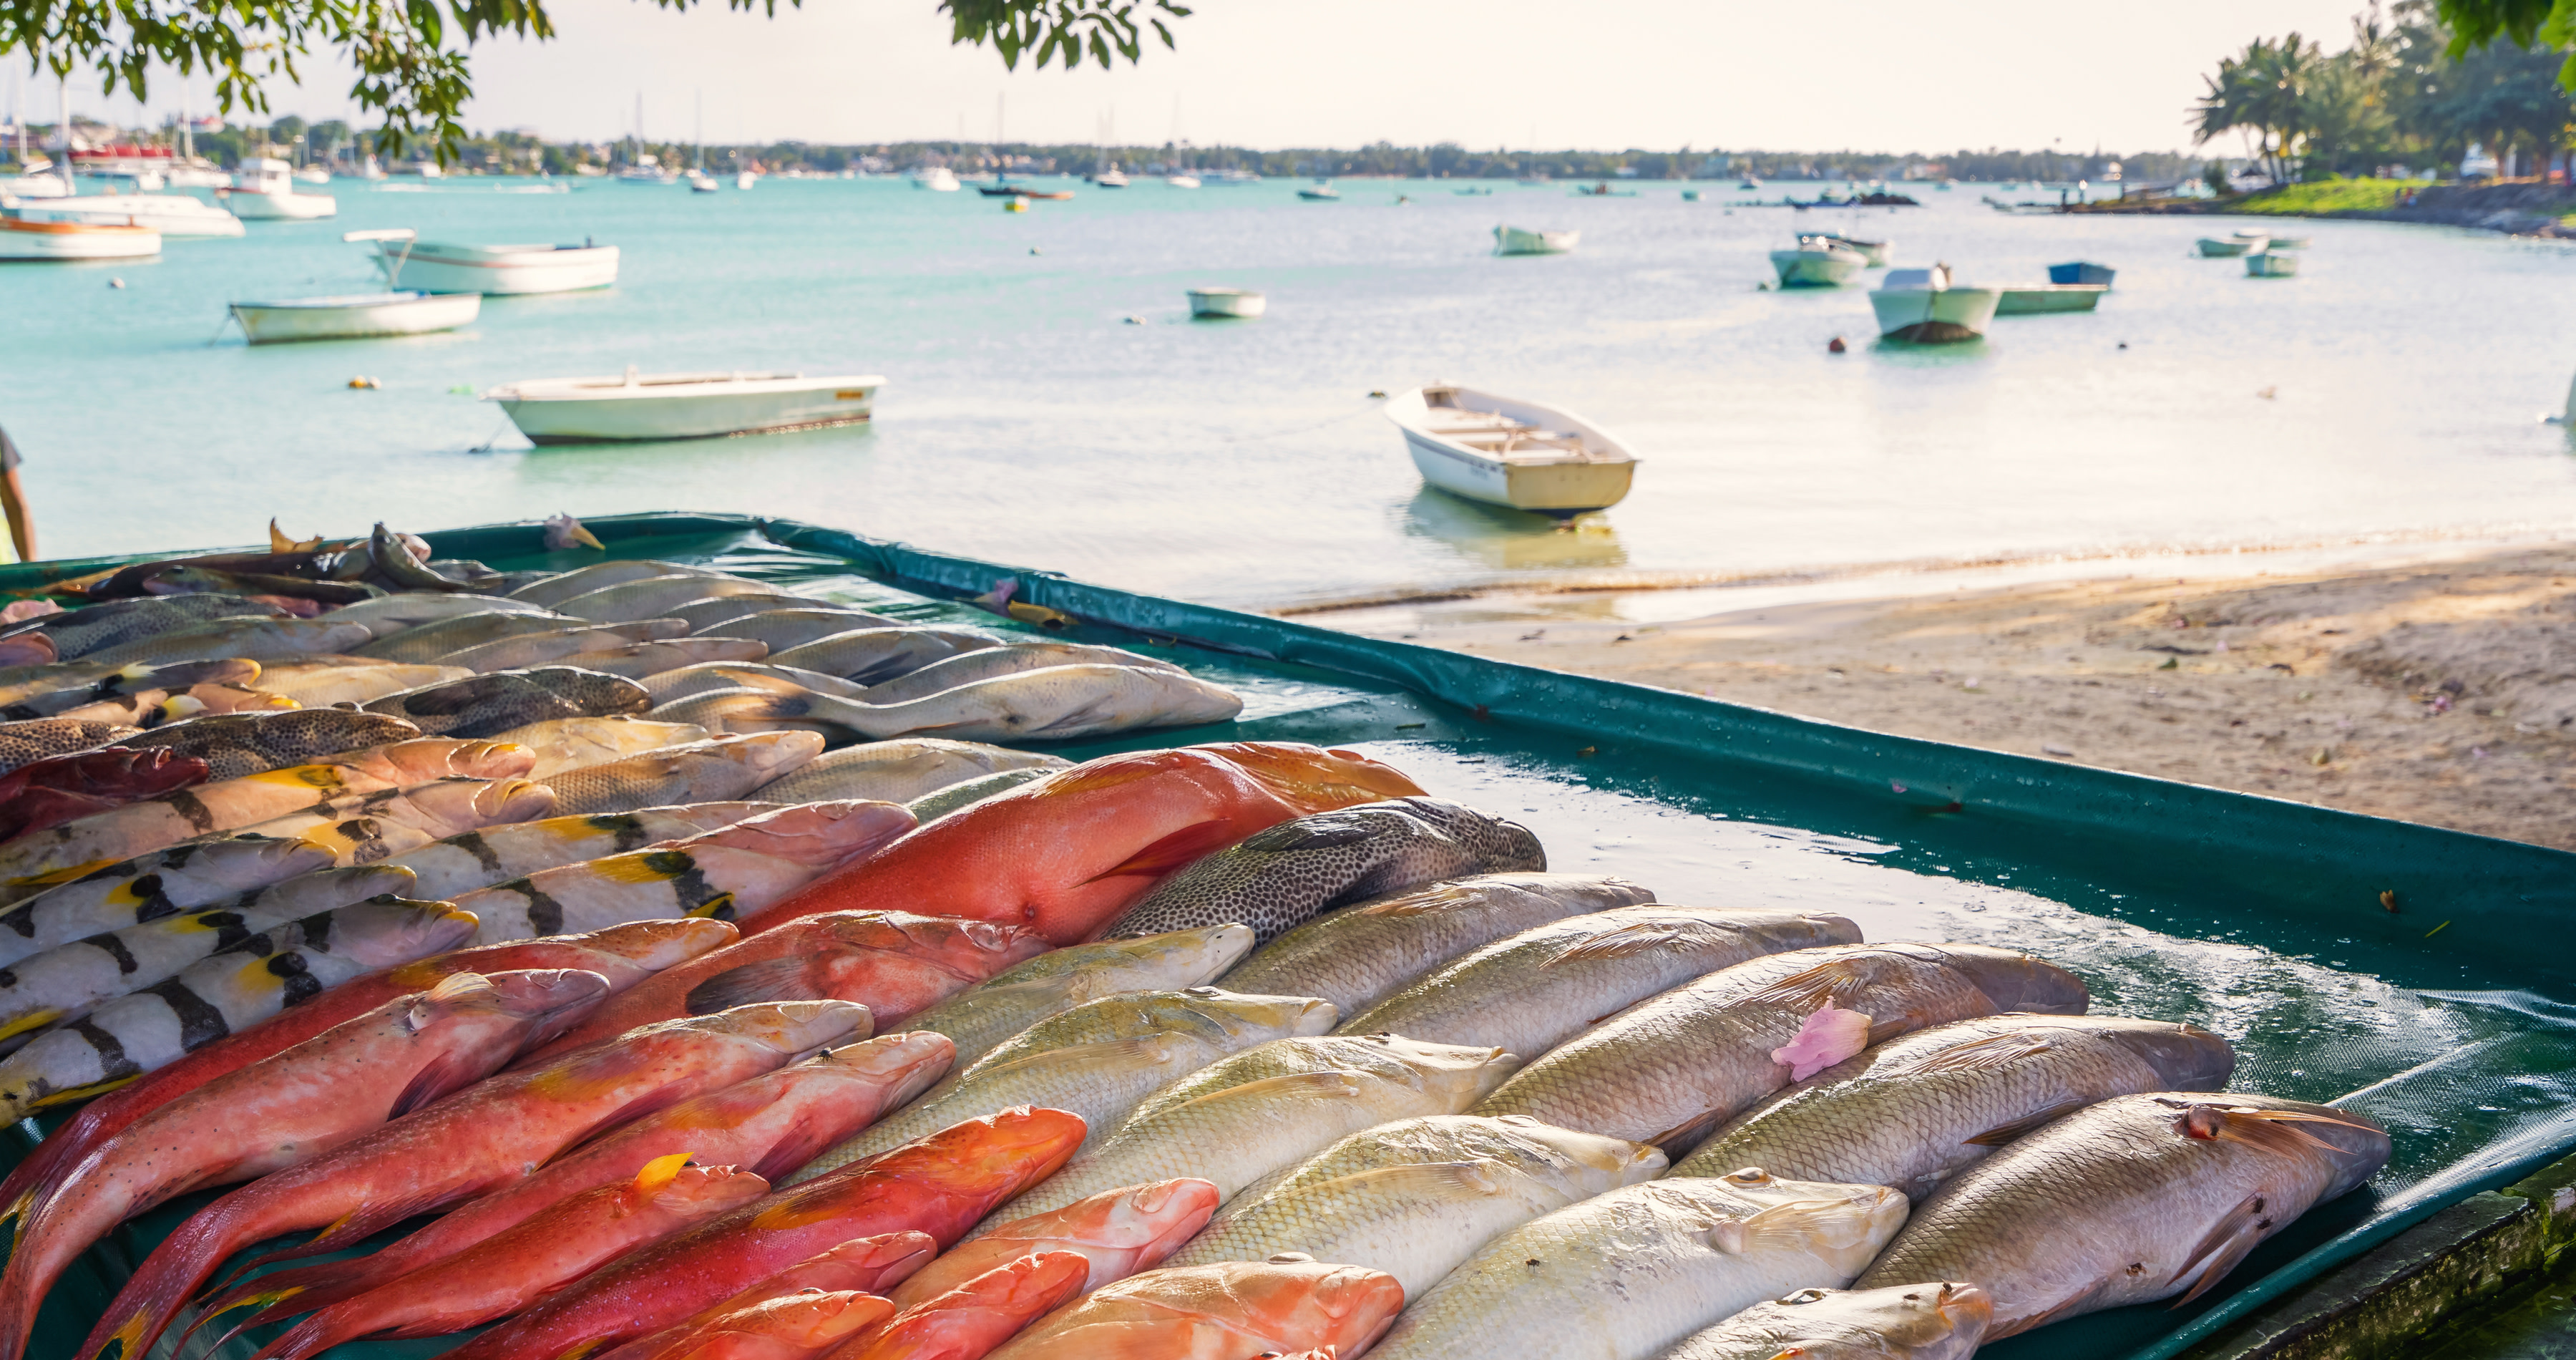 Delicious fish dishes of Mauritius - fresh fish from the ocean